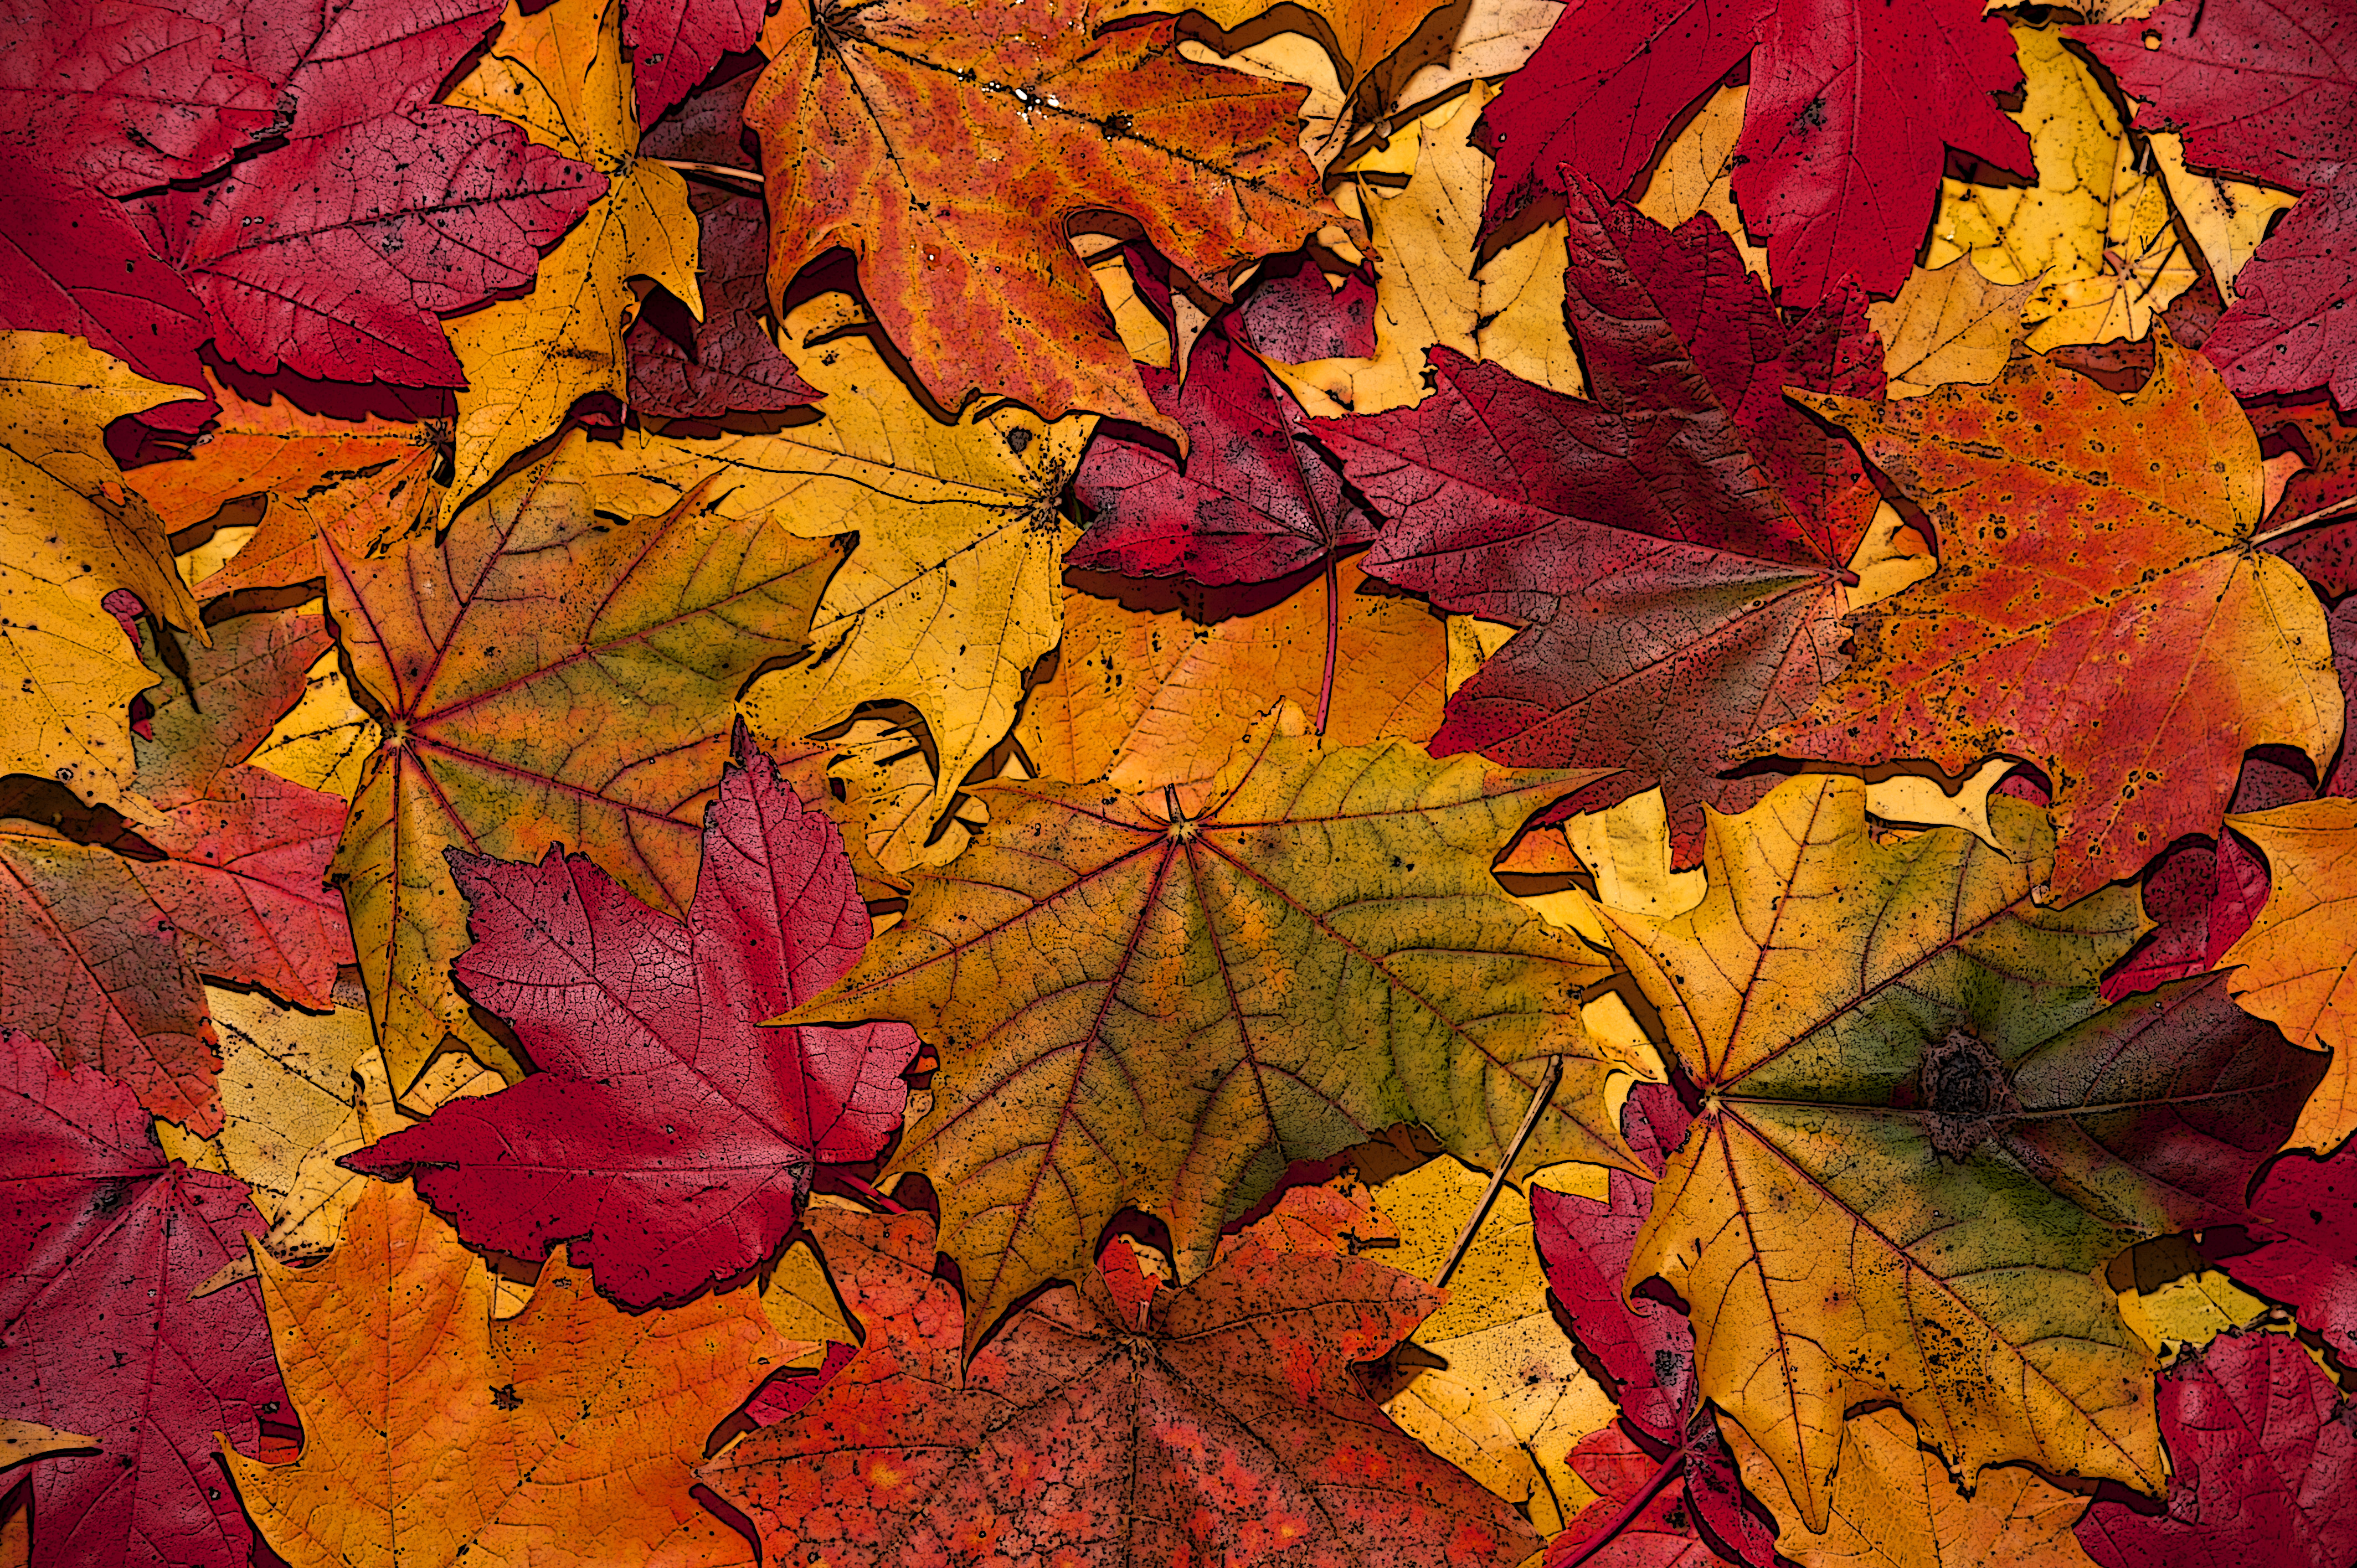 Autumn Leaves | Chasing the Light